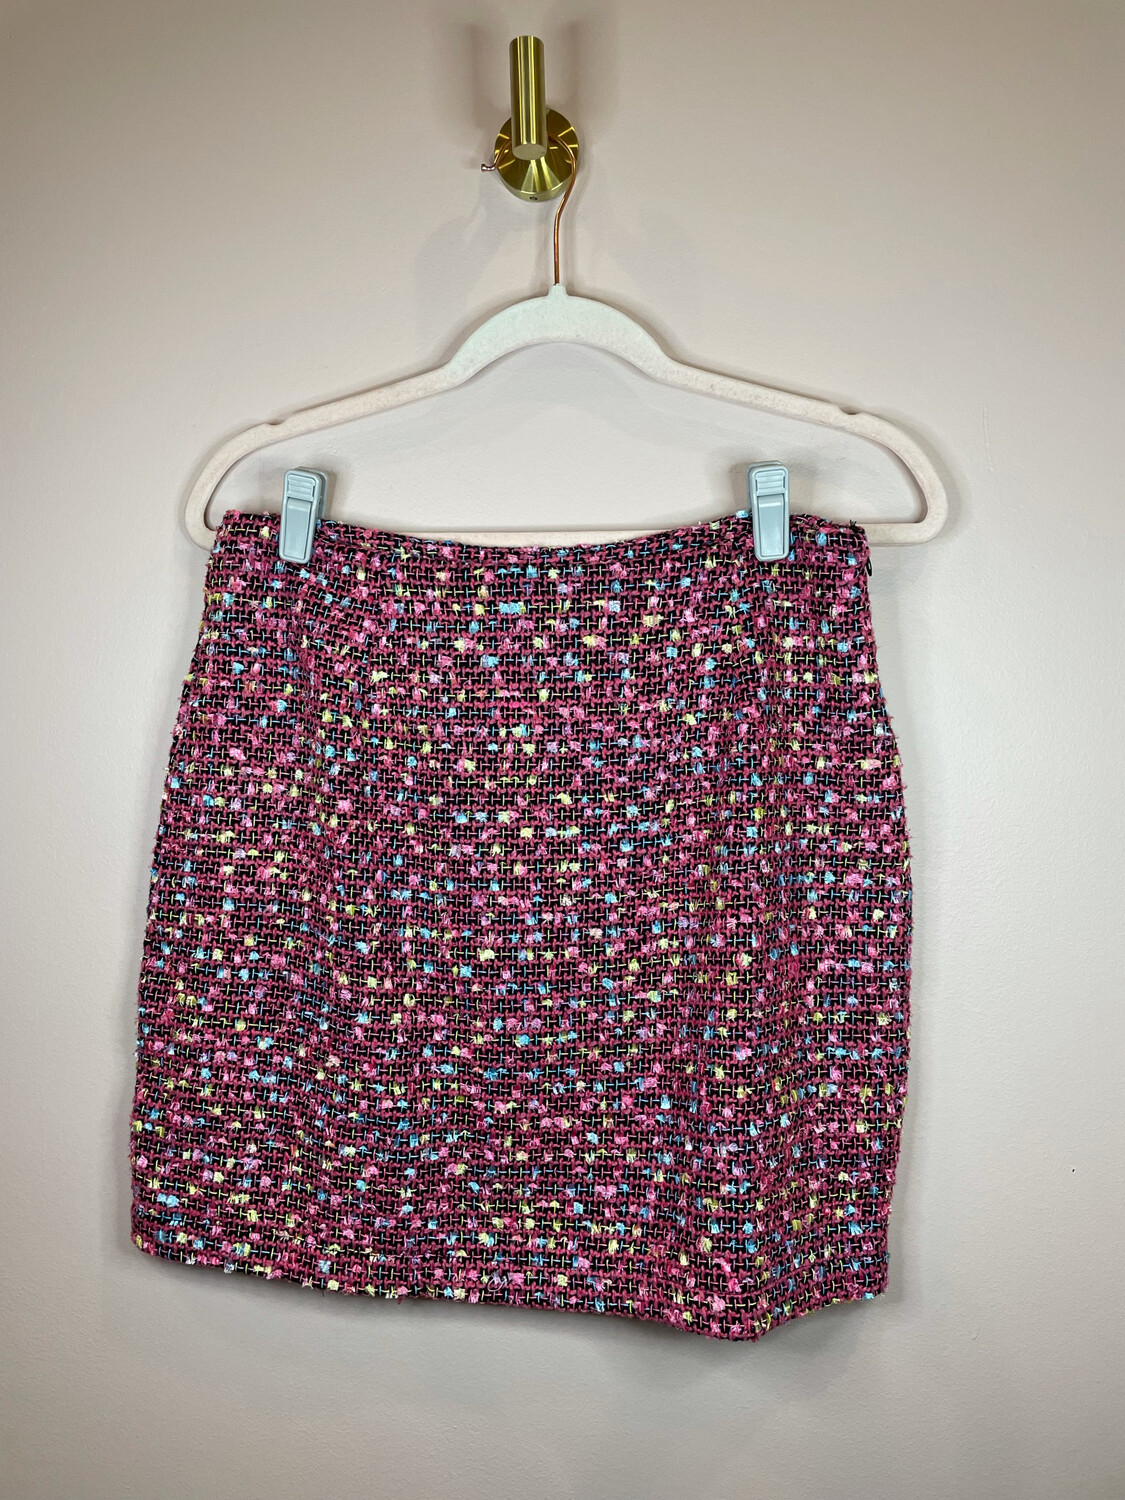 Umgee Hot Pink Skirt w/Yellow & Blue Accent - M